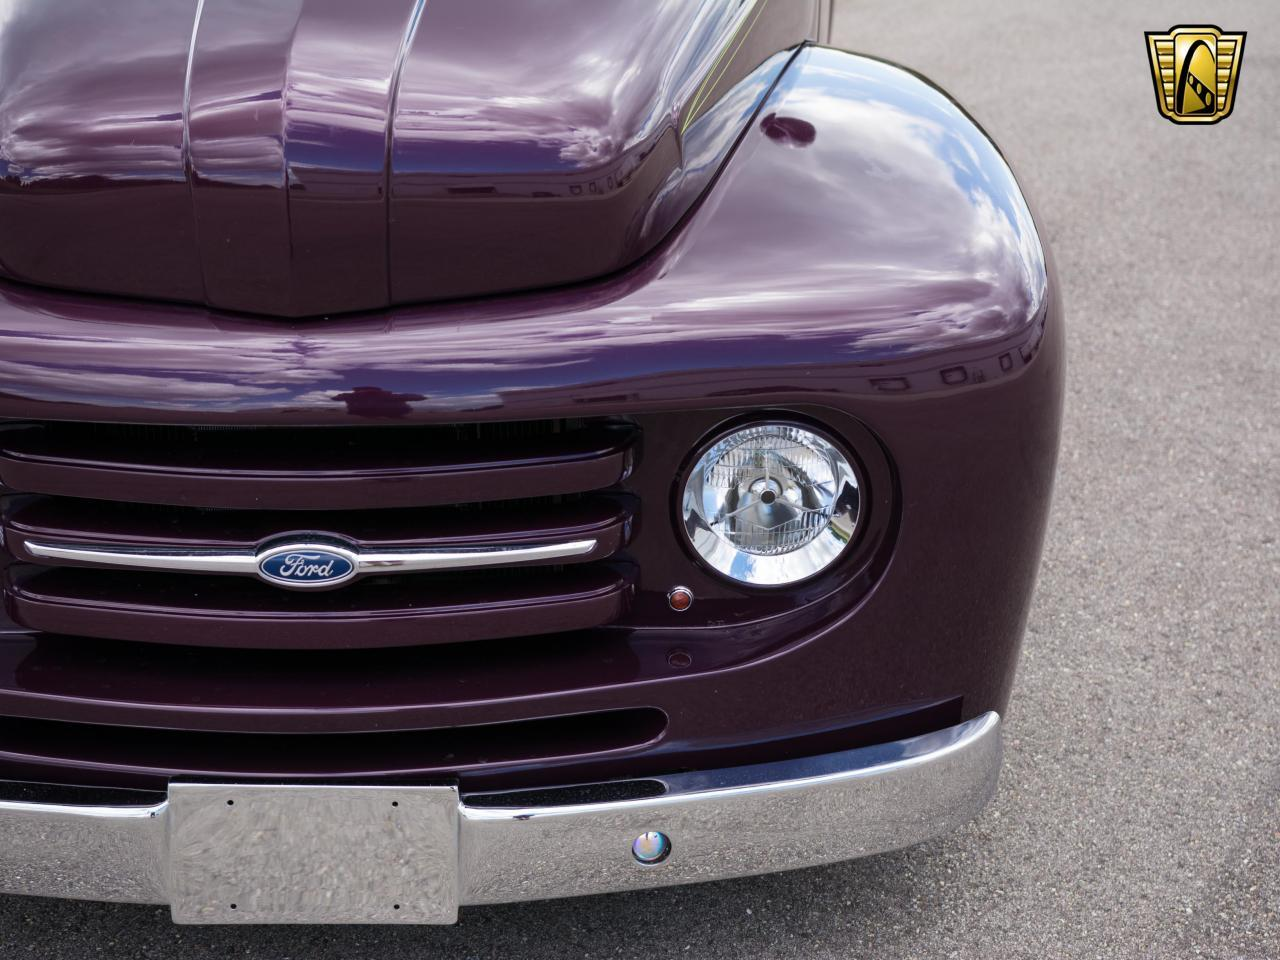 Large Picture of '48 Ford F100 located in Kenosha Wisconsin Offered by Gateway Classic Cars - Milwaukee - LHK0